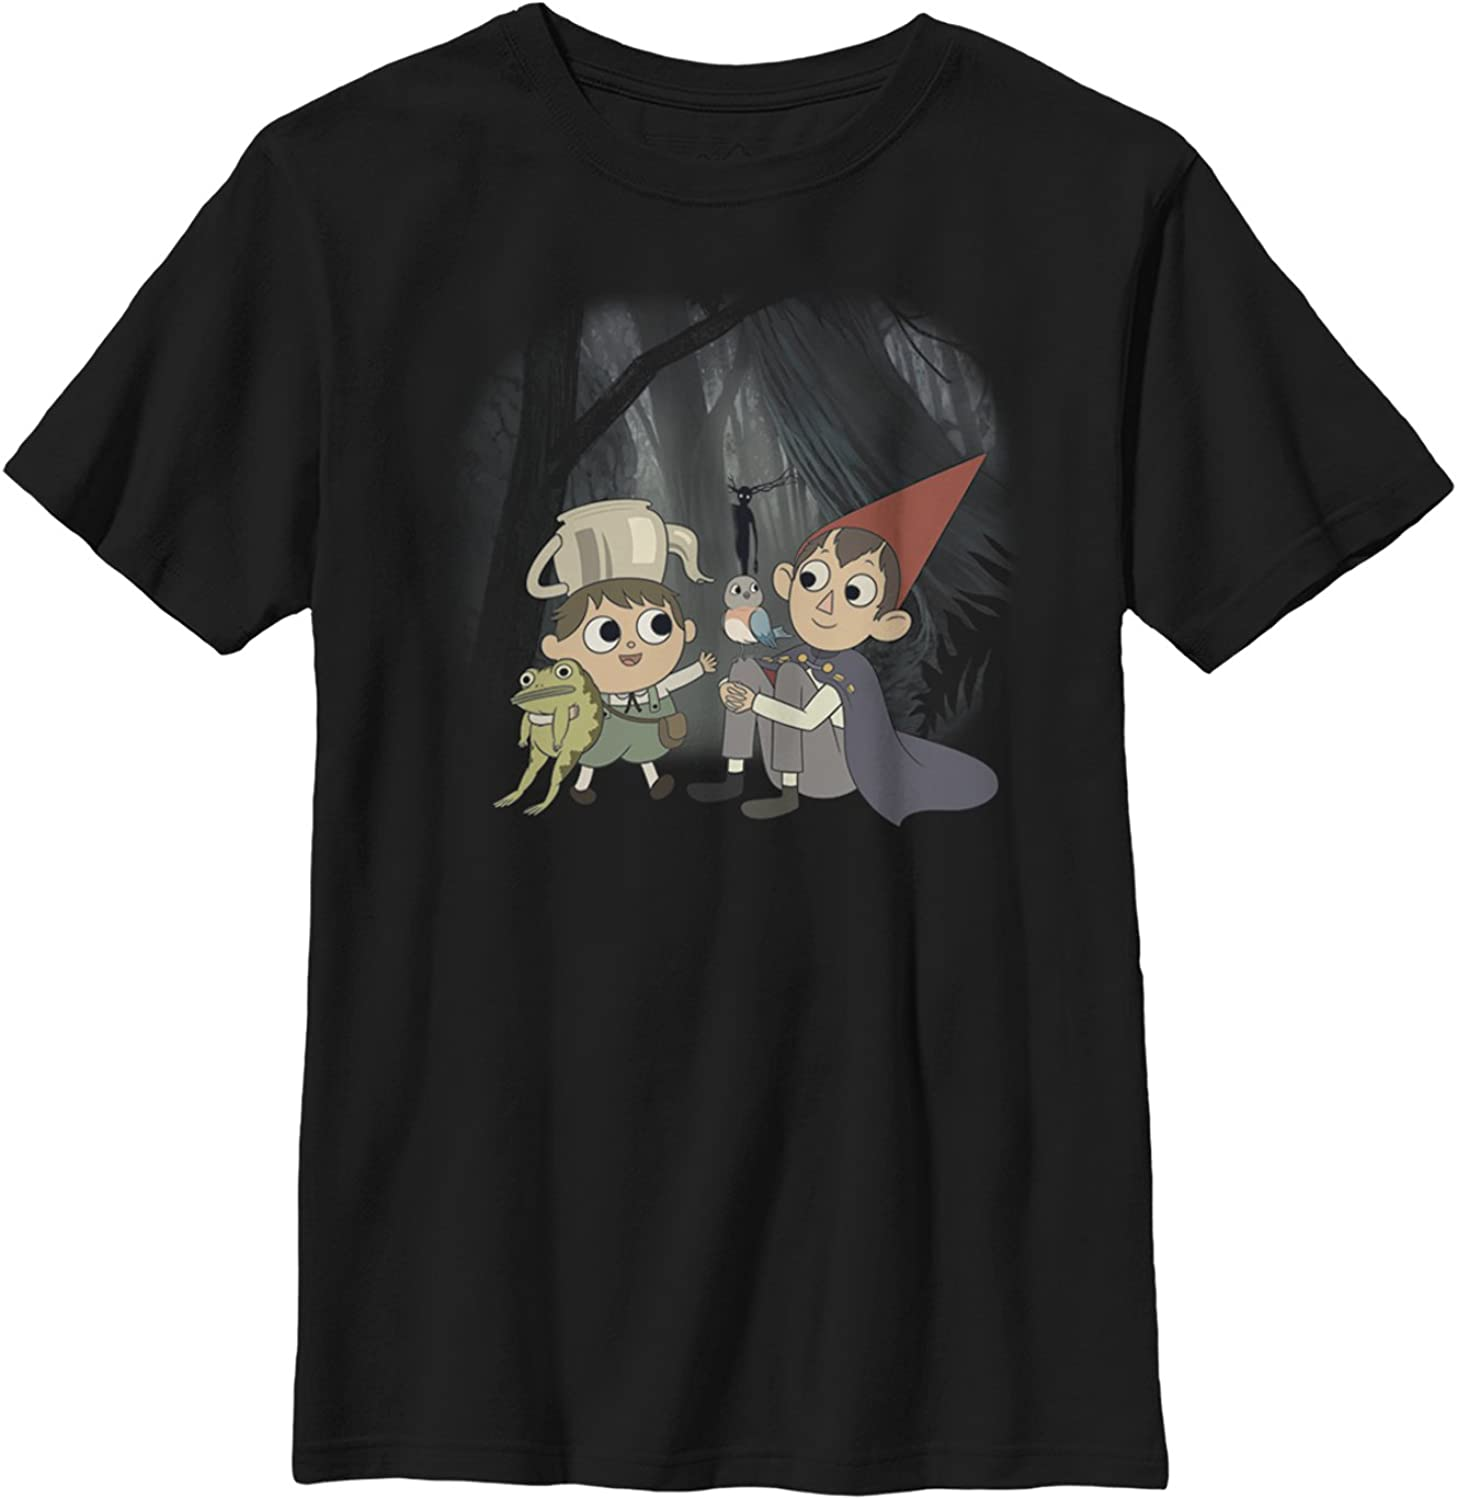 Boy's Over The Garden Wall I See You T-Shirt